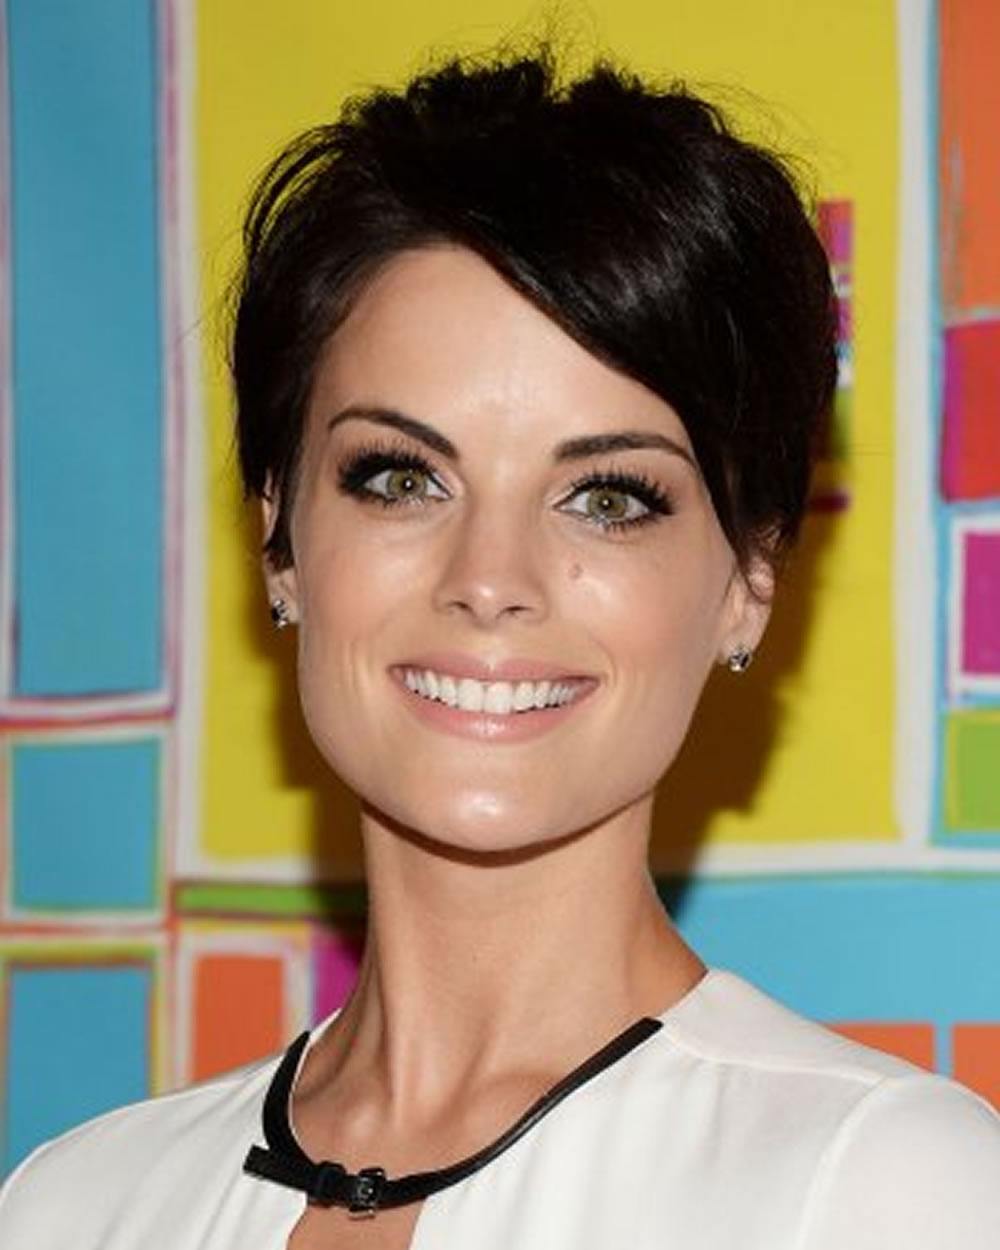 Short Hairstyles From Celebrities Jaimie Alexander – Hairstyles Throughout Celebrities Short Haircuts (View 22 of 25)